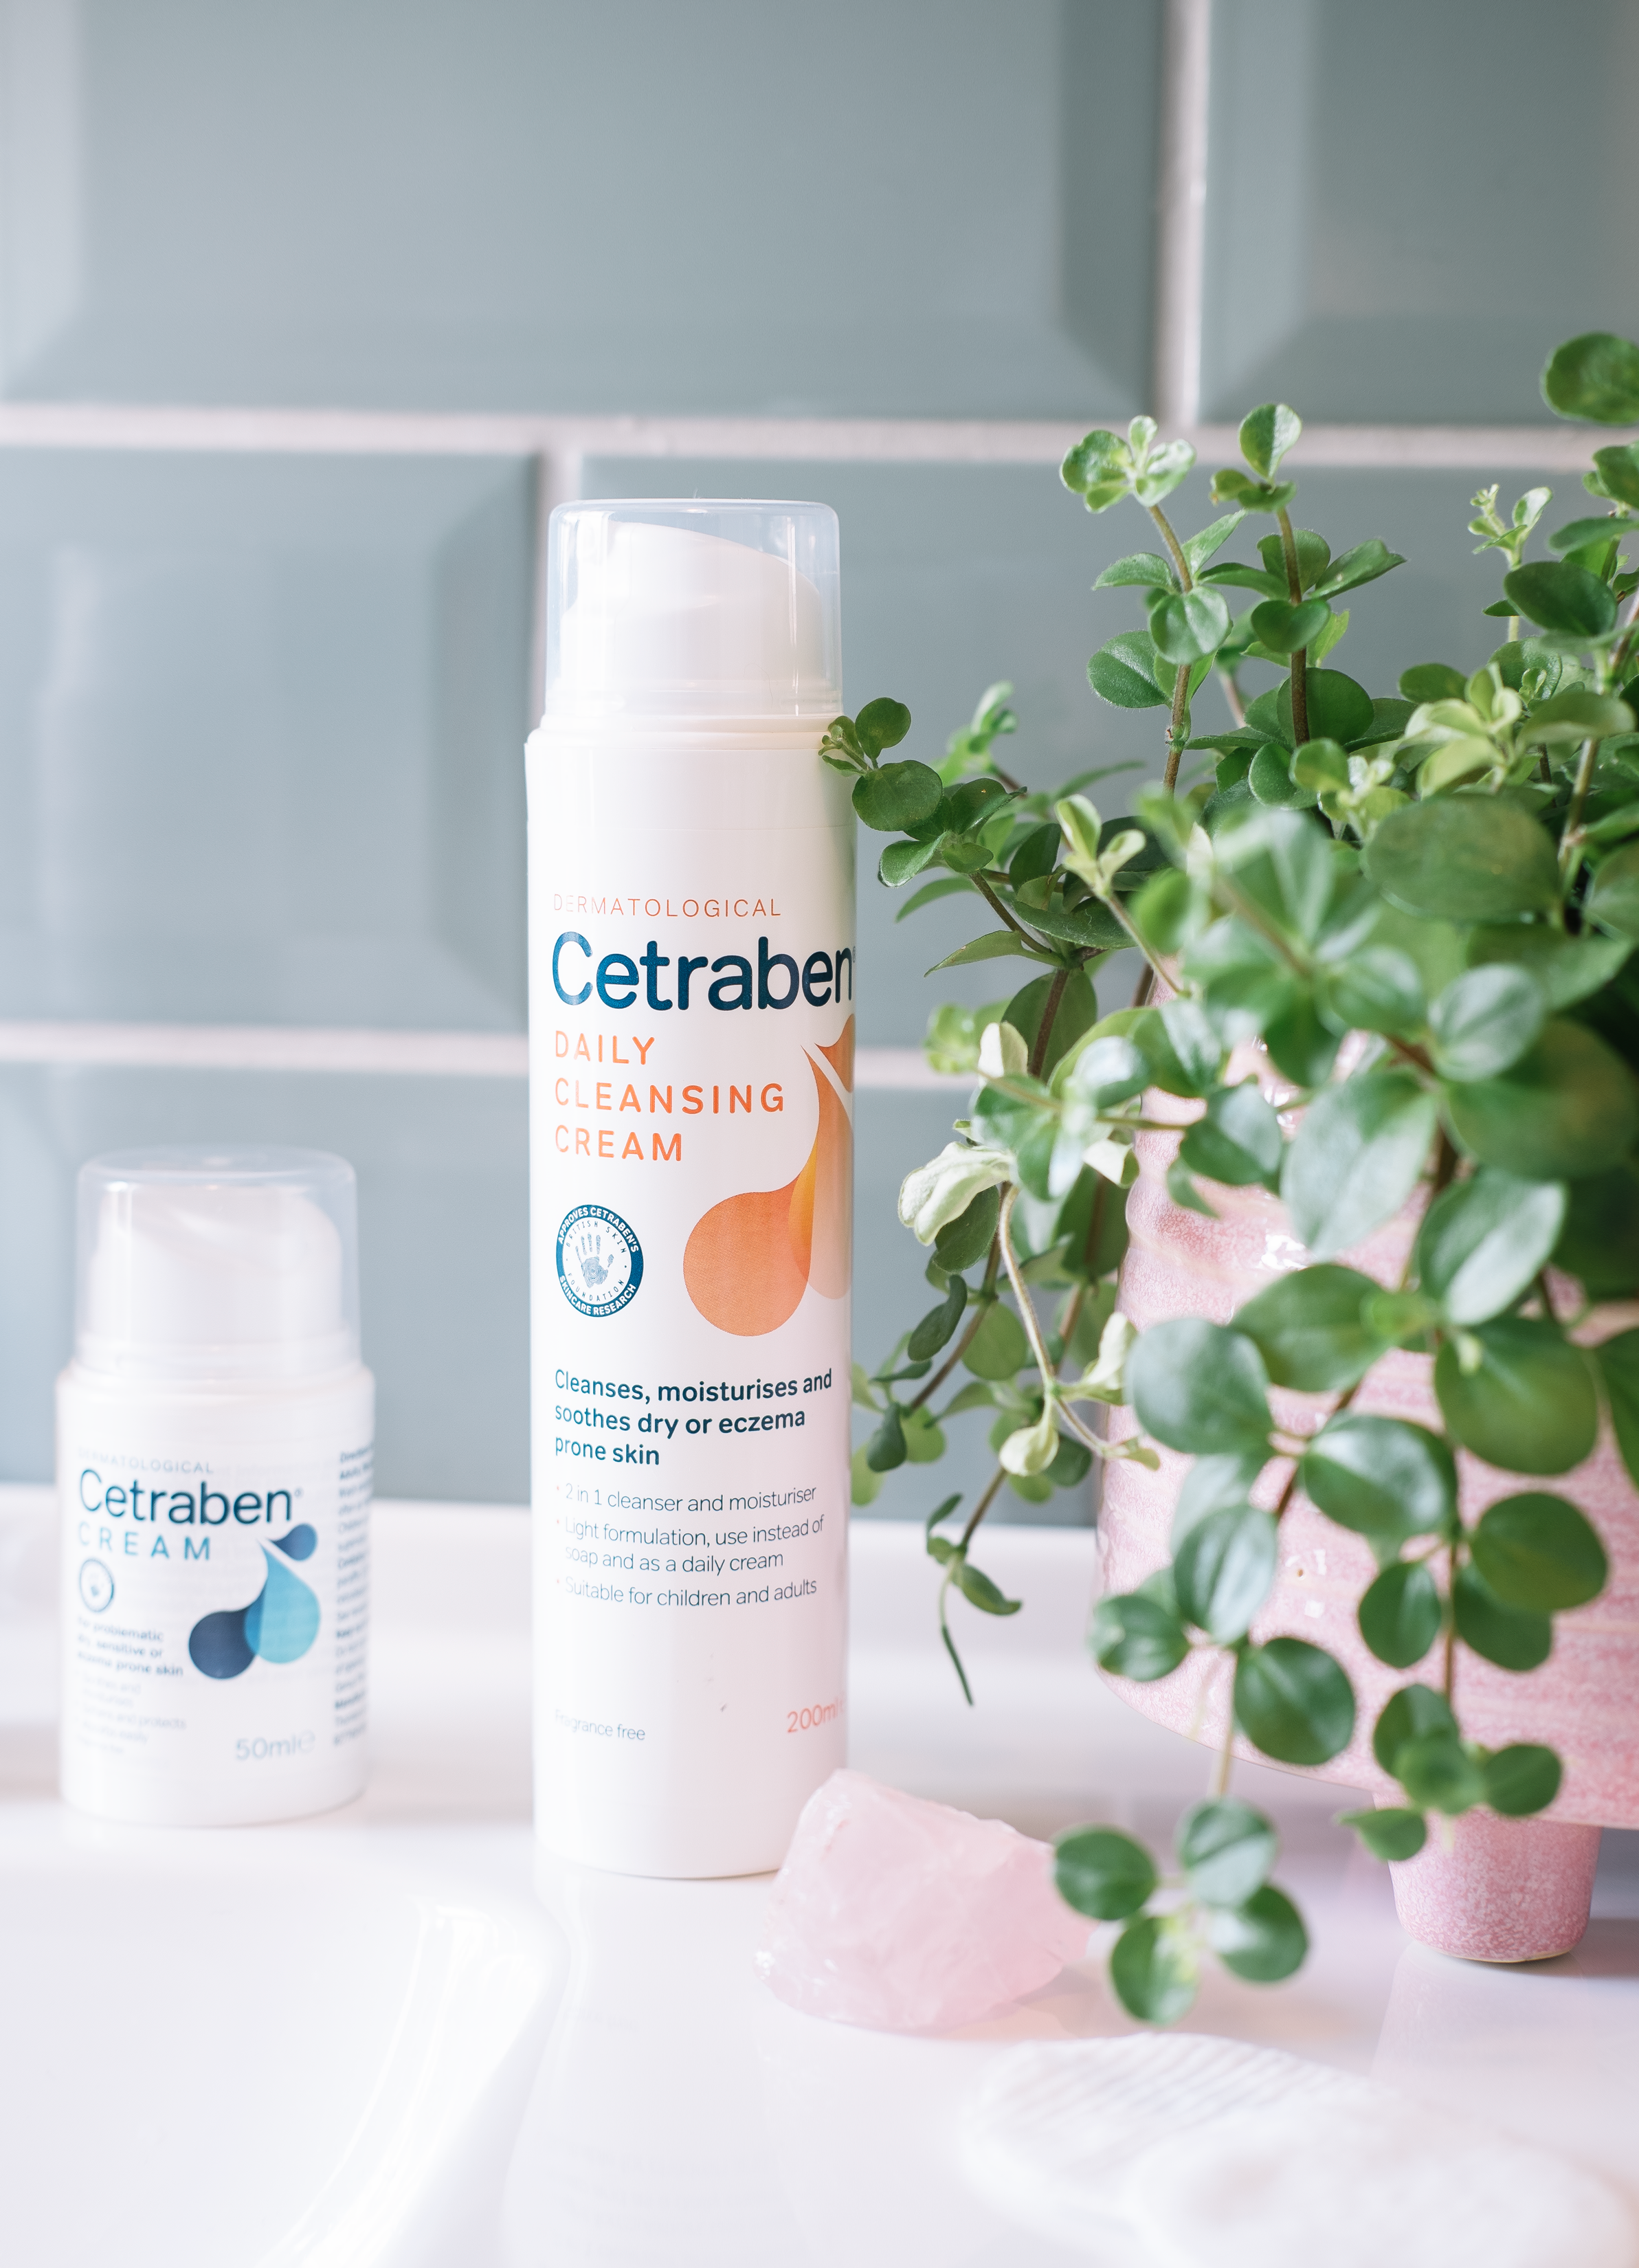 Cetraben daily cleansing cream - For my second PM and AM cleanse this is what I've been using and it's been making my skin extremely happy. My complexion is going through some changes at the moment, it's typically a little more oily in the warmer months but due to the weather being all over the place things are feeling pretty dry and lack lustre as the temperature is all over the place which always disrupts my skin's balance. This lovely cream cleanser is a two in one but I prefer to use it as a cleanser and it's brilliant for after I've removed the bulk of my makeup to get off any last remnants of product hanging around as well cleansing without stripping it of any moisture. Once everything is removed my skin feels clean but undeniably soft which can be rare with a lot of products. As of right now, my complexion isn't too spot prone but when the scheduled one pops up around that time of the month this has been brilliant as it's incredibly kind to the breakout because it's been formulated to soothe eczema-prone skin. A brilliant cleanser if you're a little more sensitive and do struggle with problematic areas.